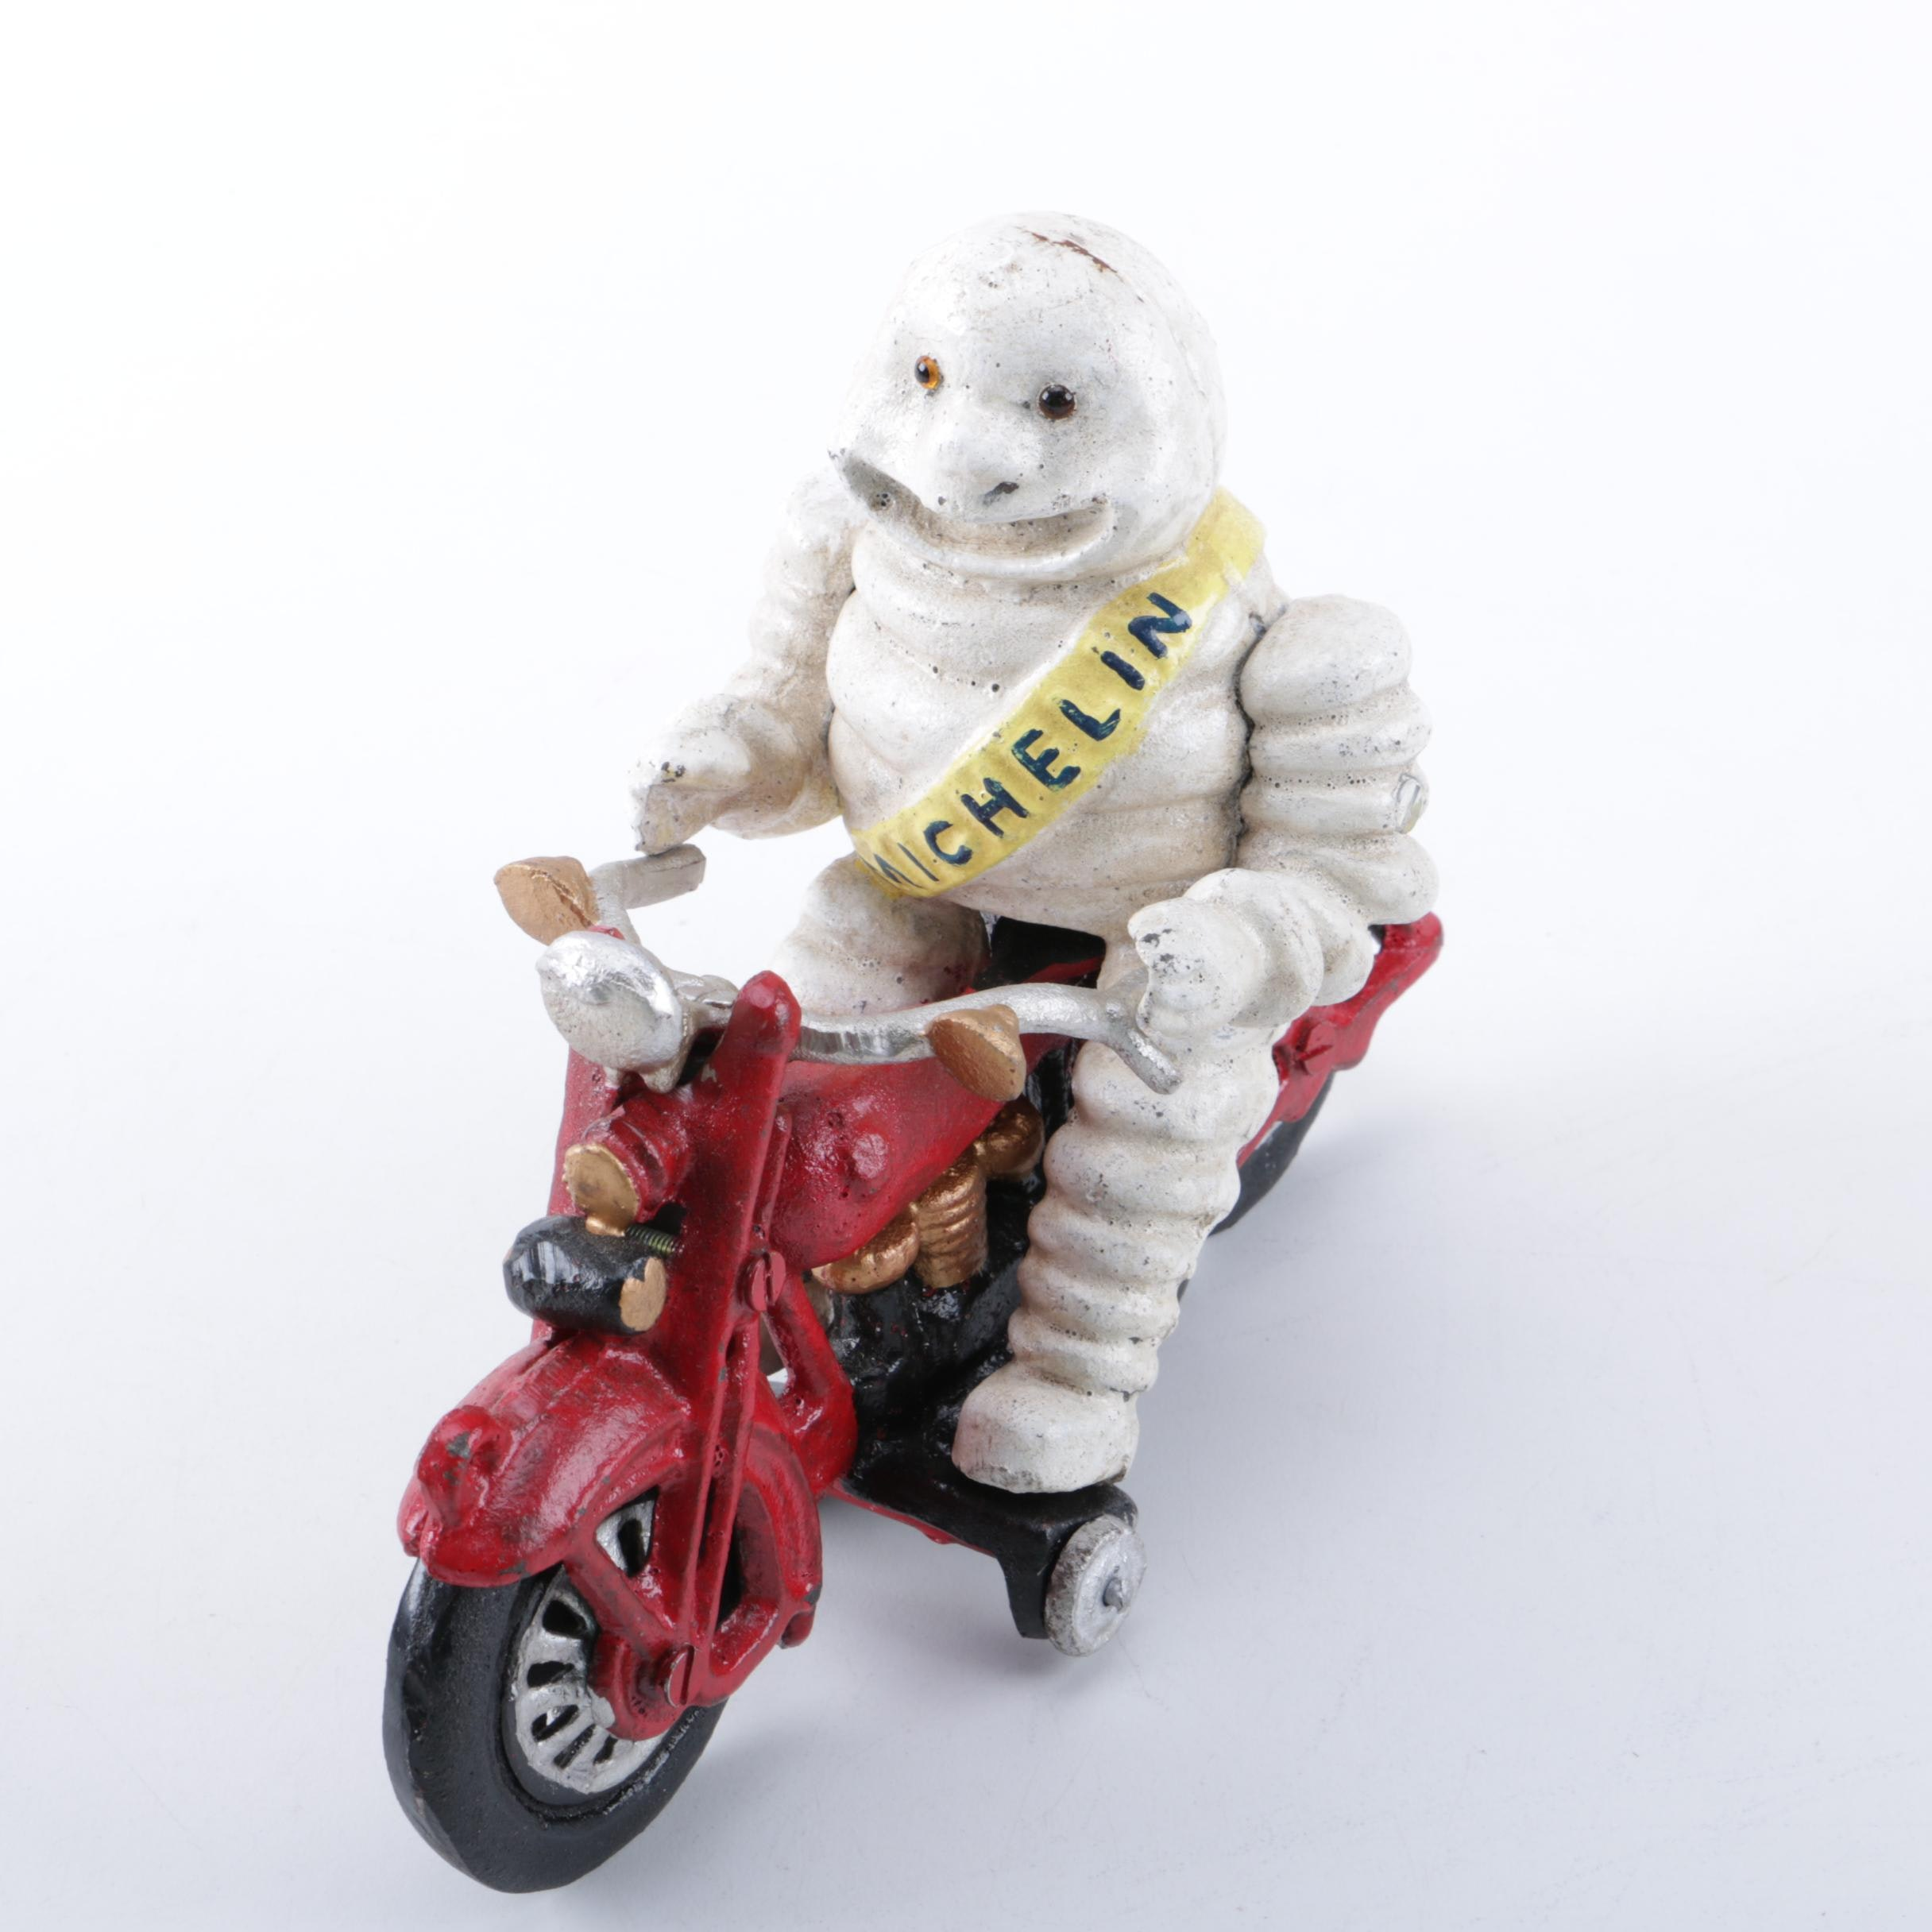 Reproduction Cast Iron Michelin Man on a Motorcycle